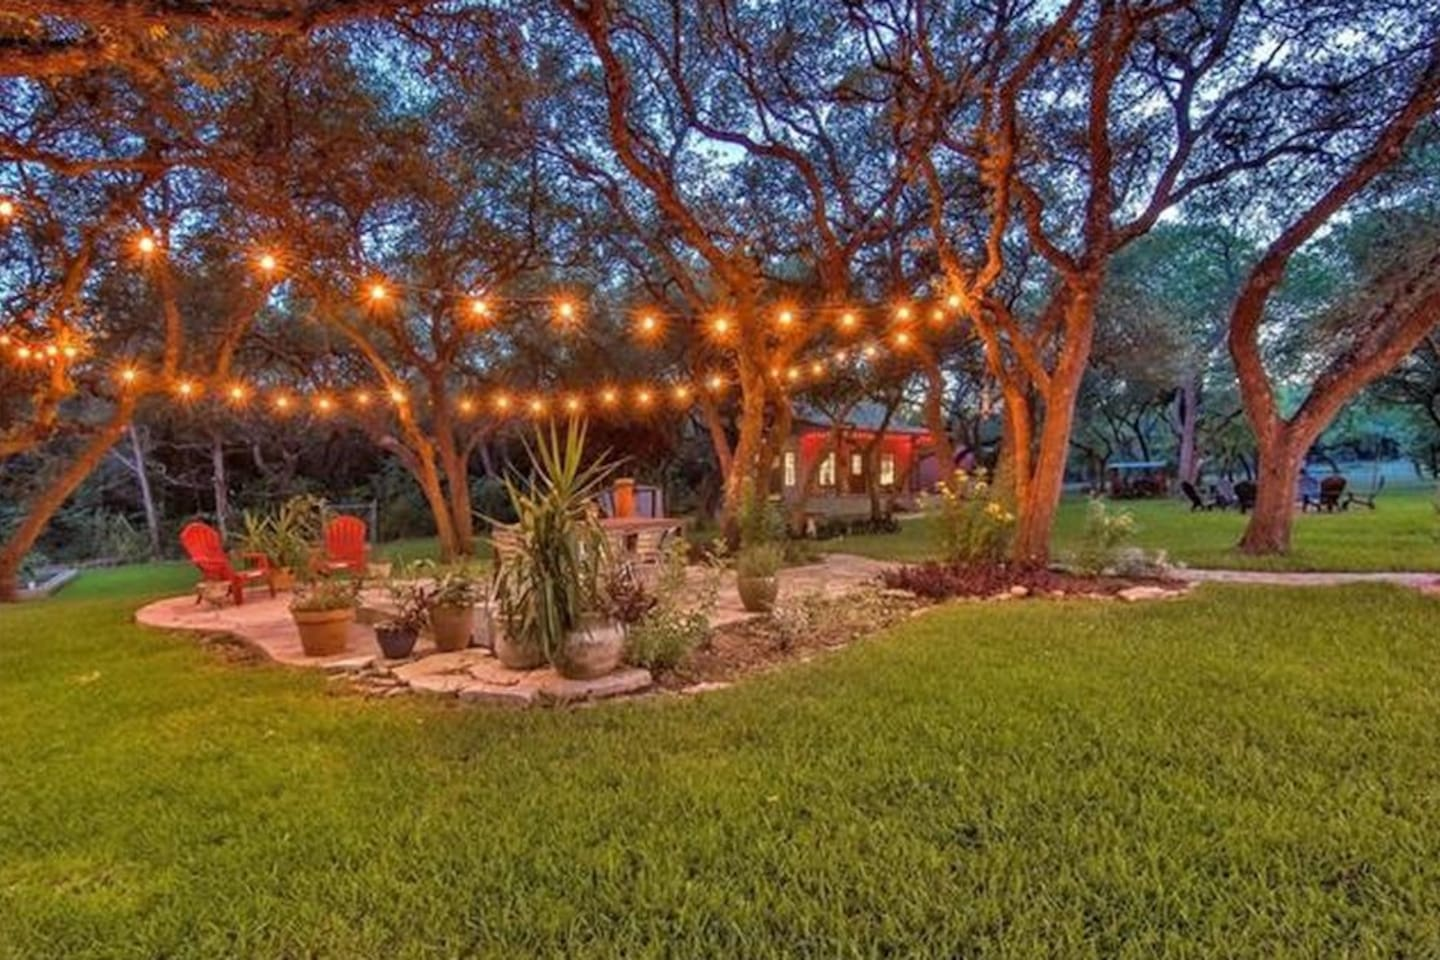 Amazing Backyard Patio for Outdoor Entertainment and Dining!